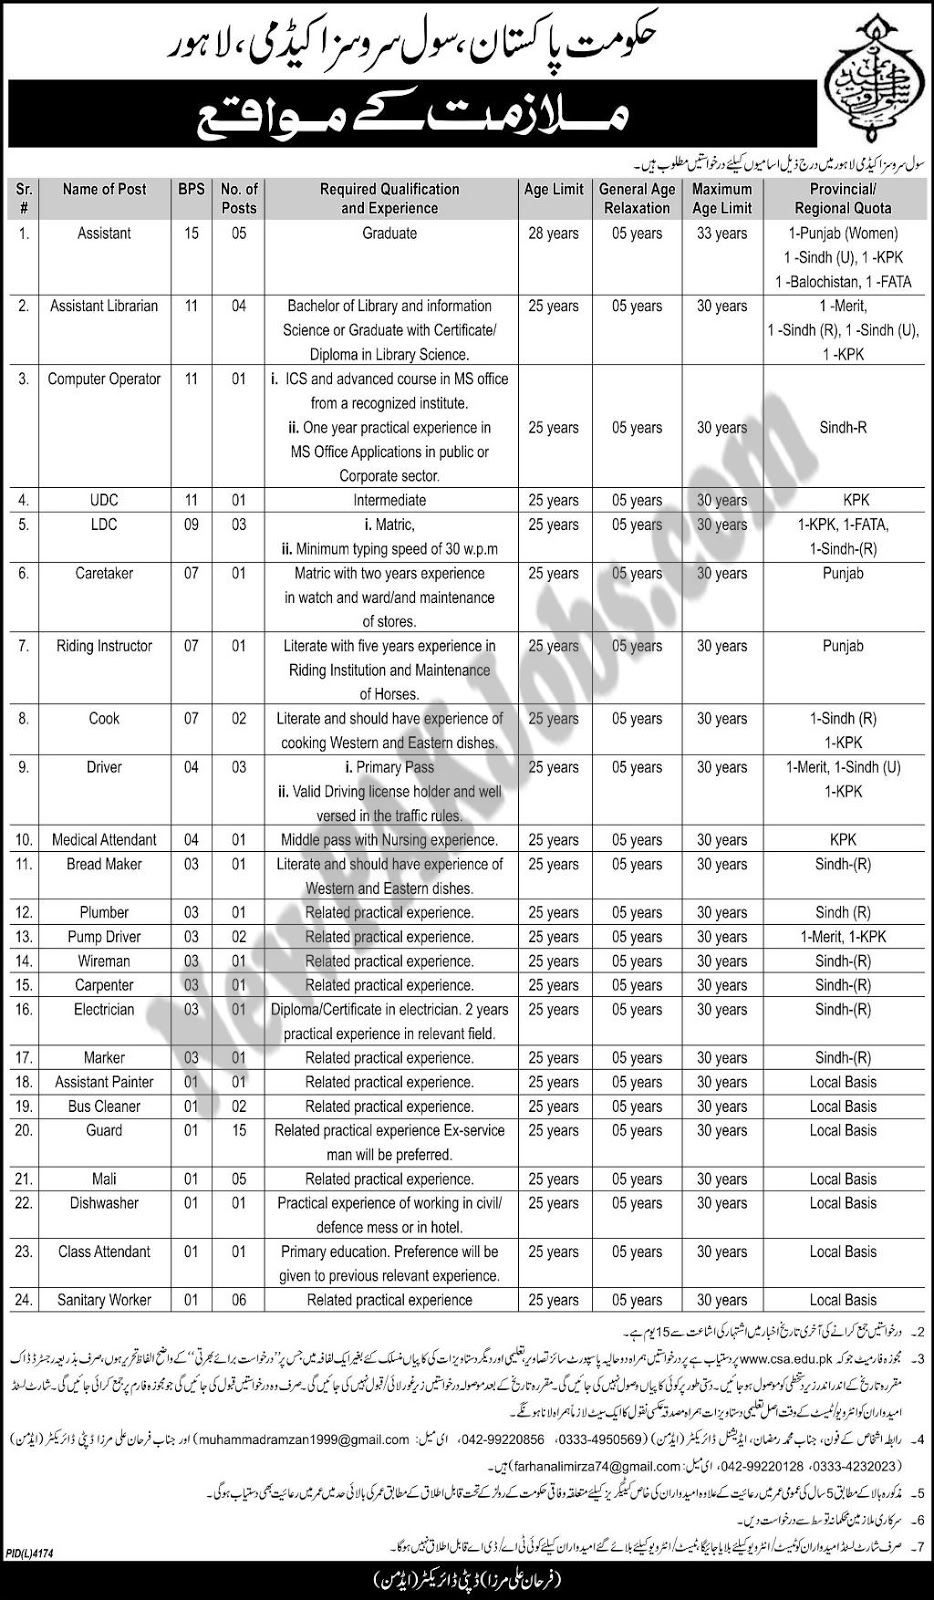 Latest Jobs in Civil Services Academy Govt of Pakistan 13 April 2018